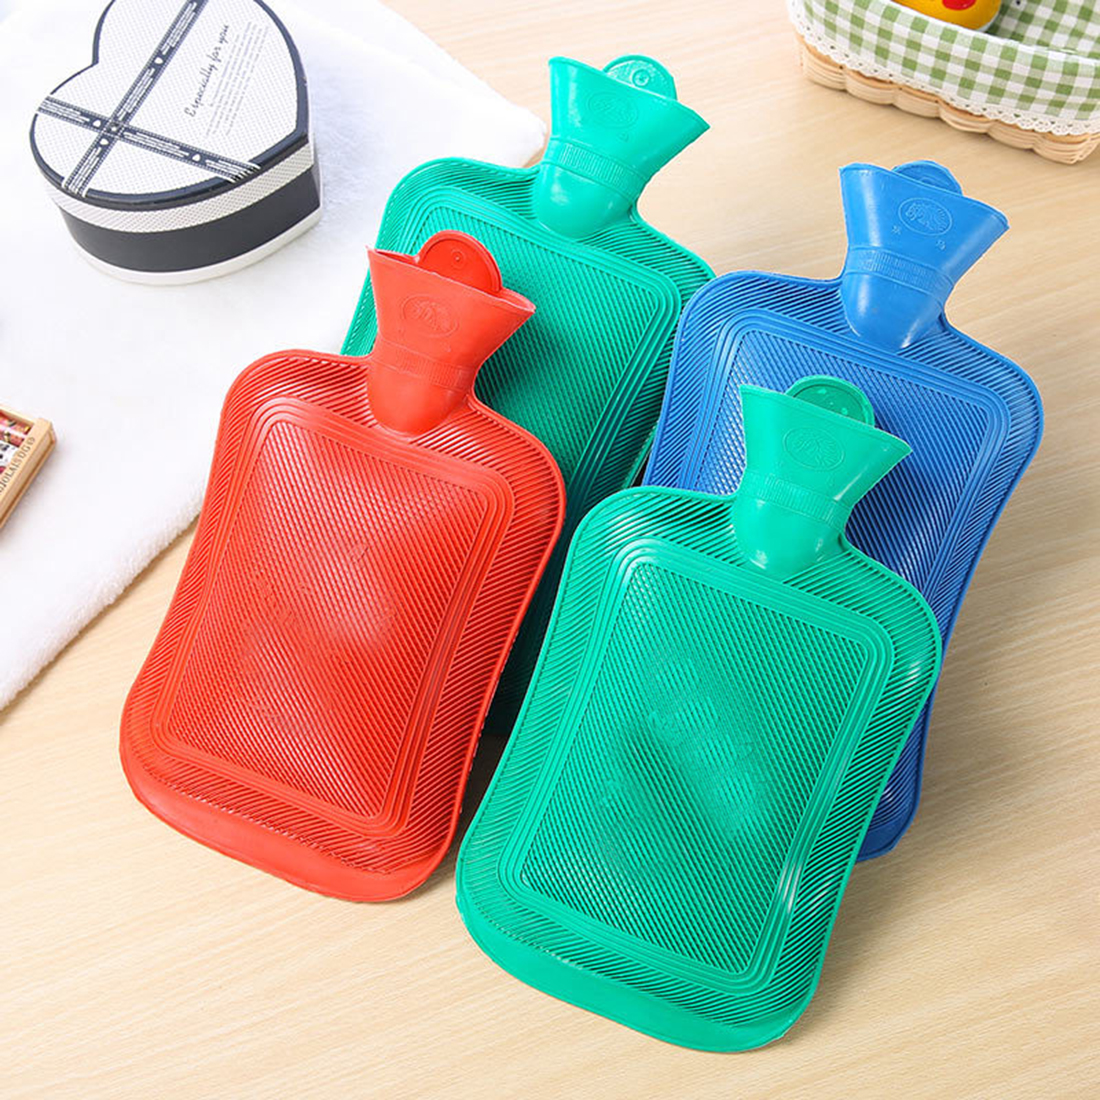 New Water Bottle Thick High Density Rubber Bag Hand Warming Water Bottles Winter Hot Water Bags Bottle random color